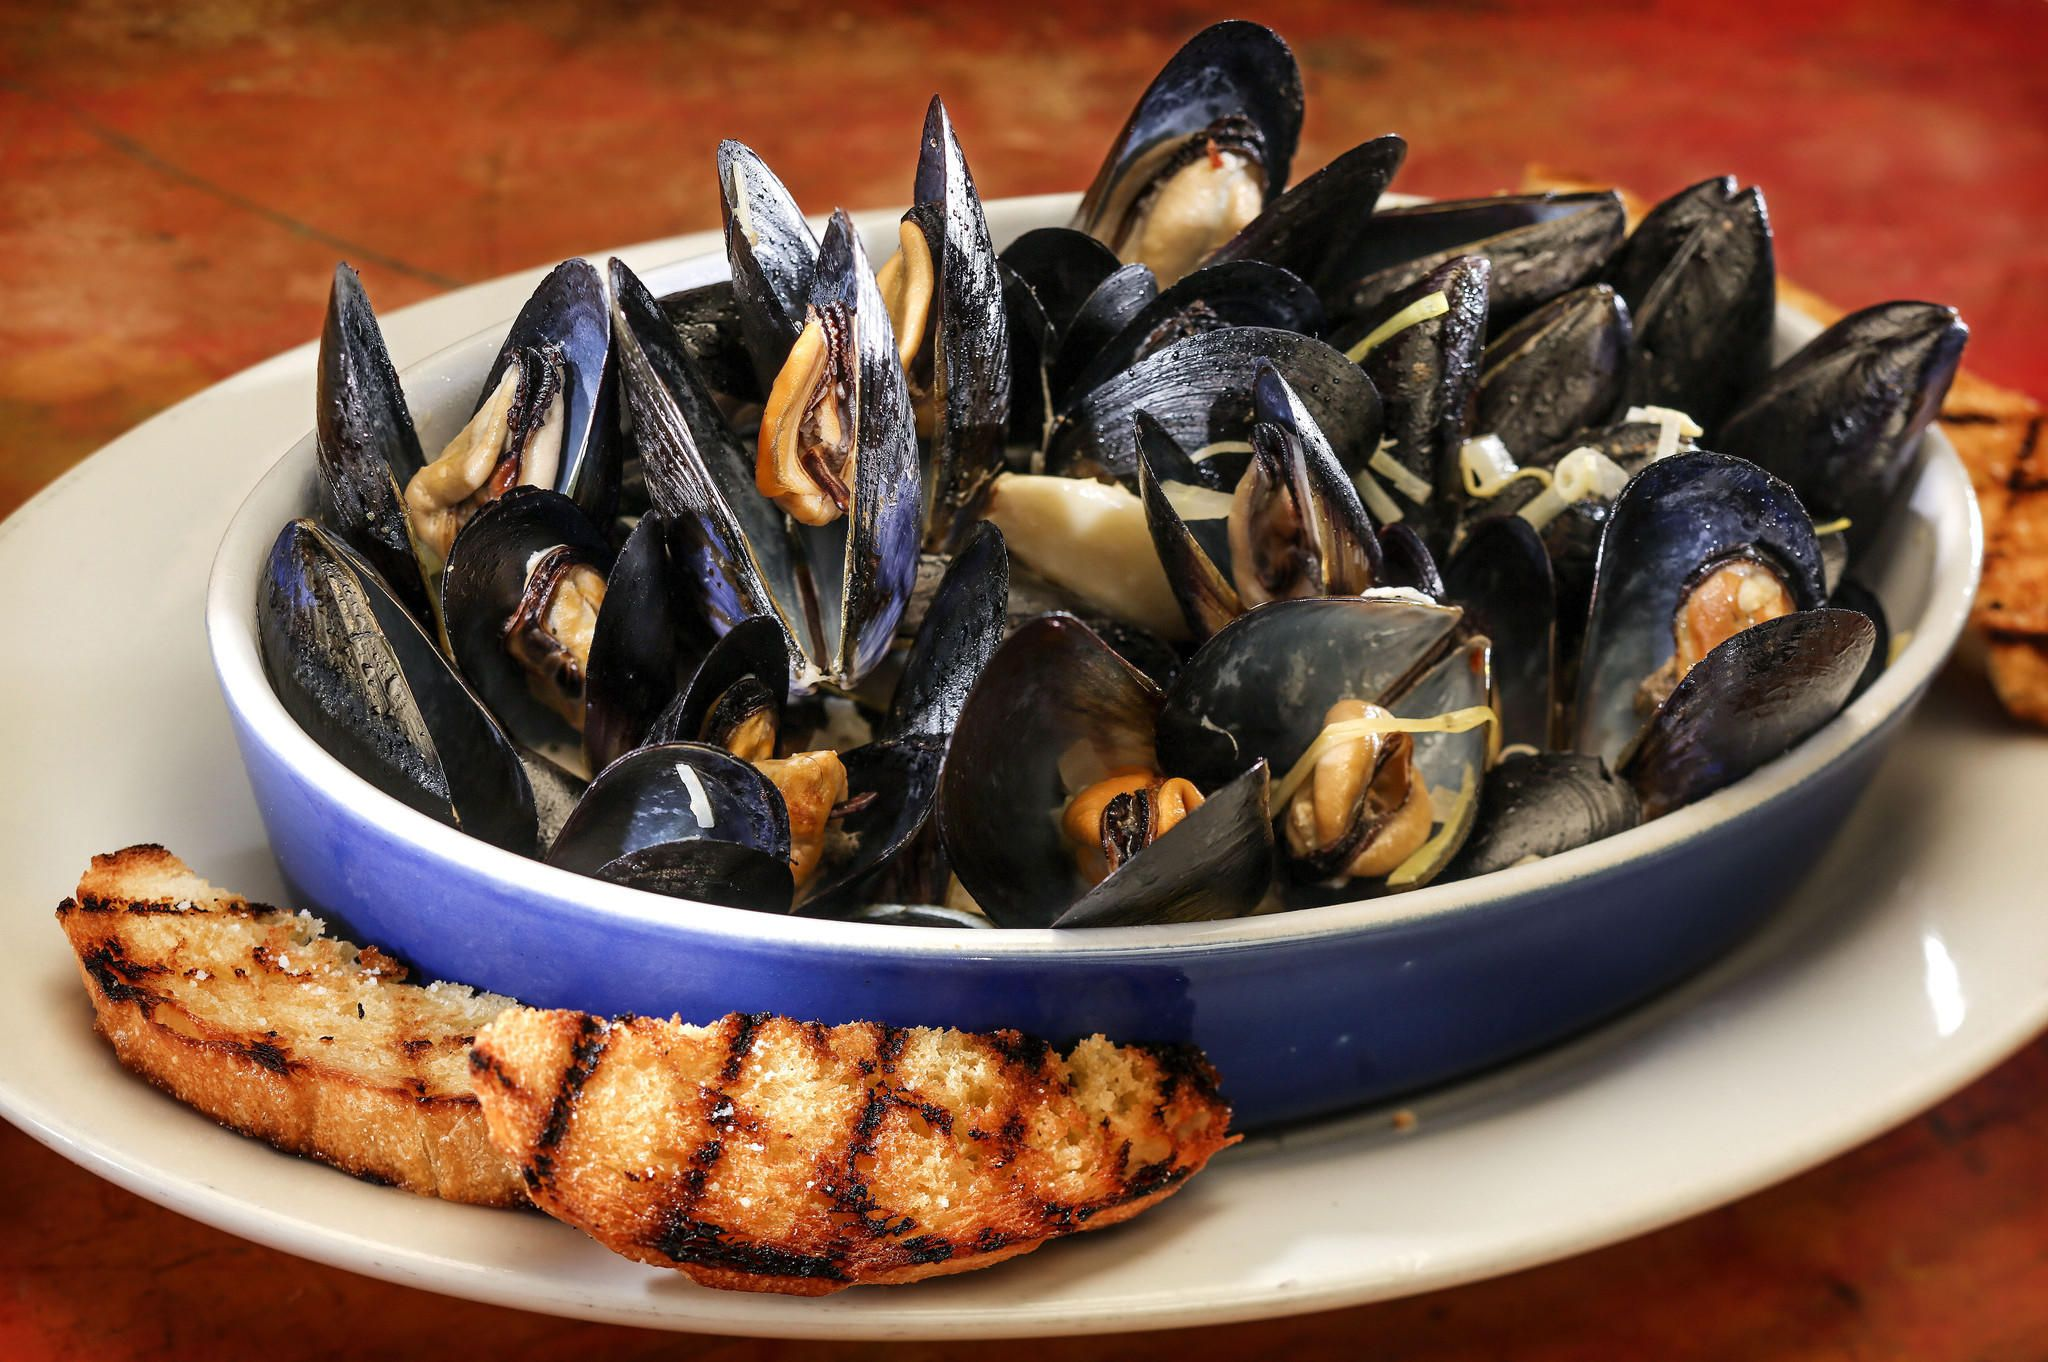 Check out Giuseppe's mussels in sambuca. It's so easy to make ...